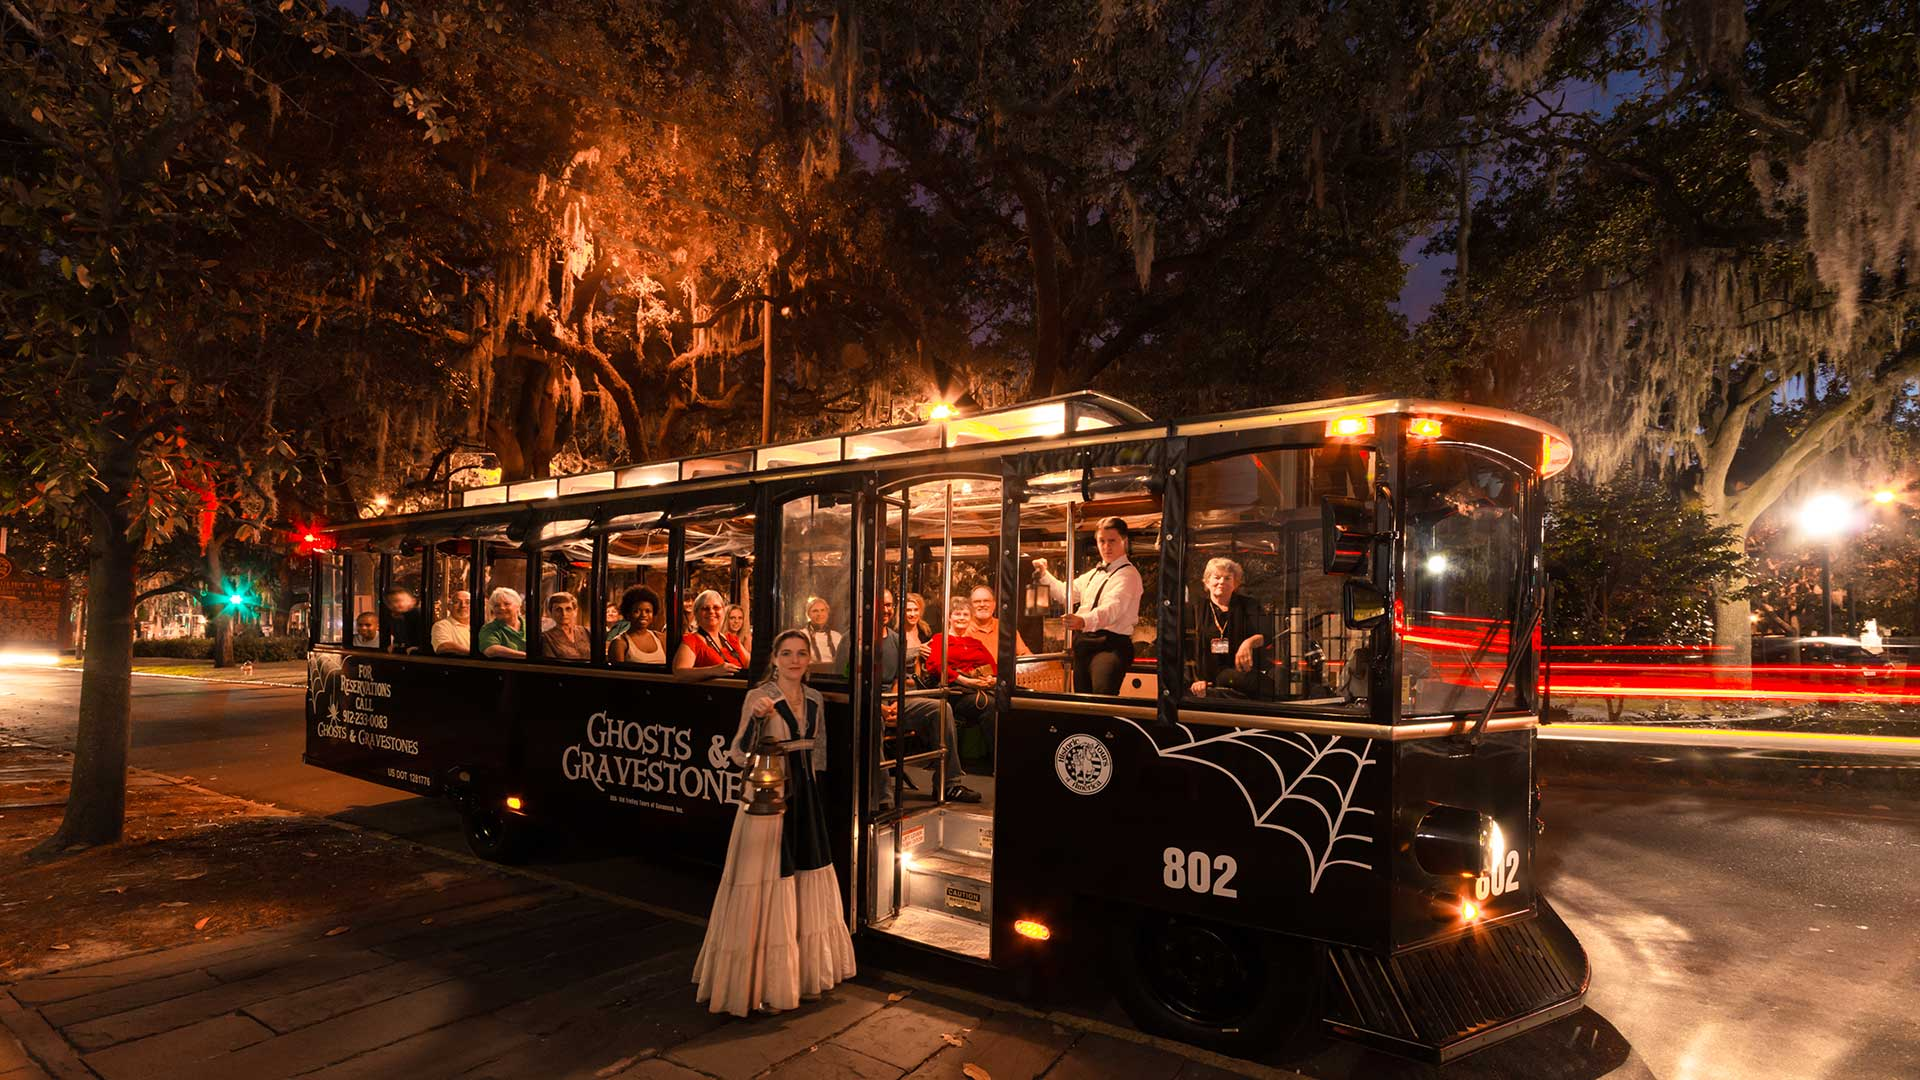 savannah haunted trolley tour guide holding lantern